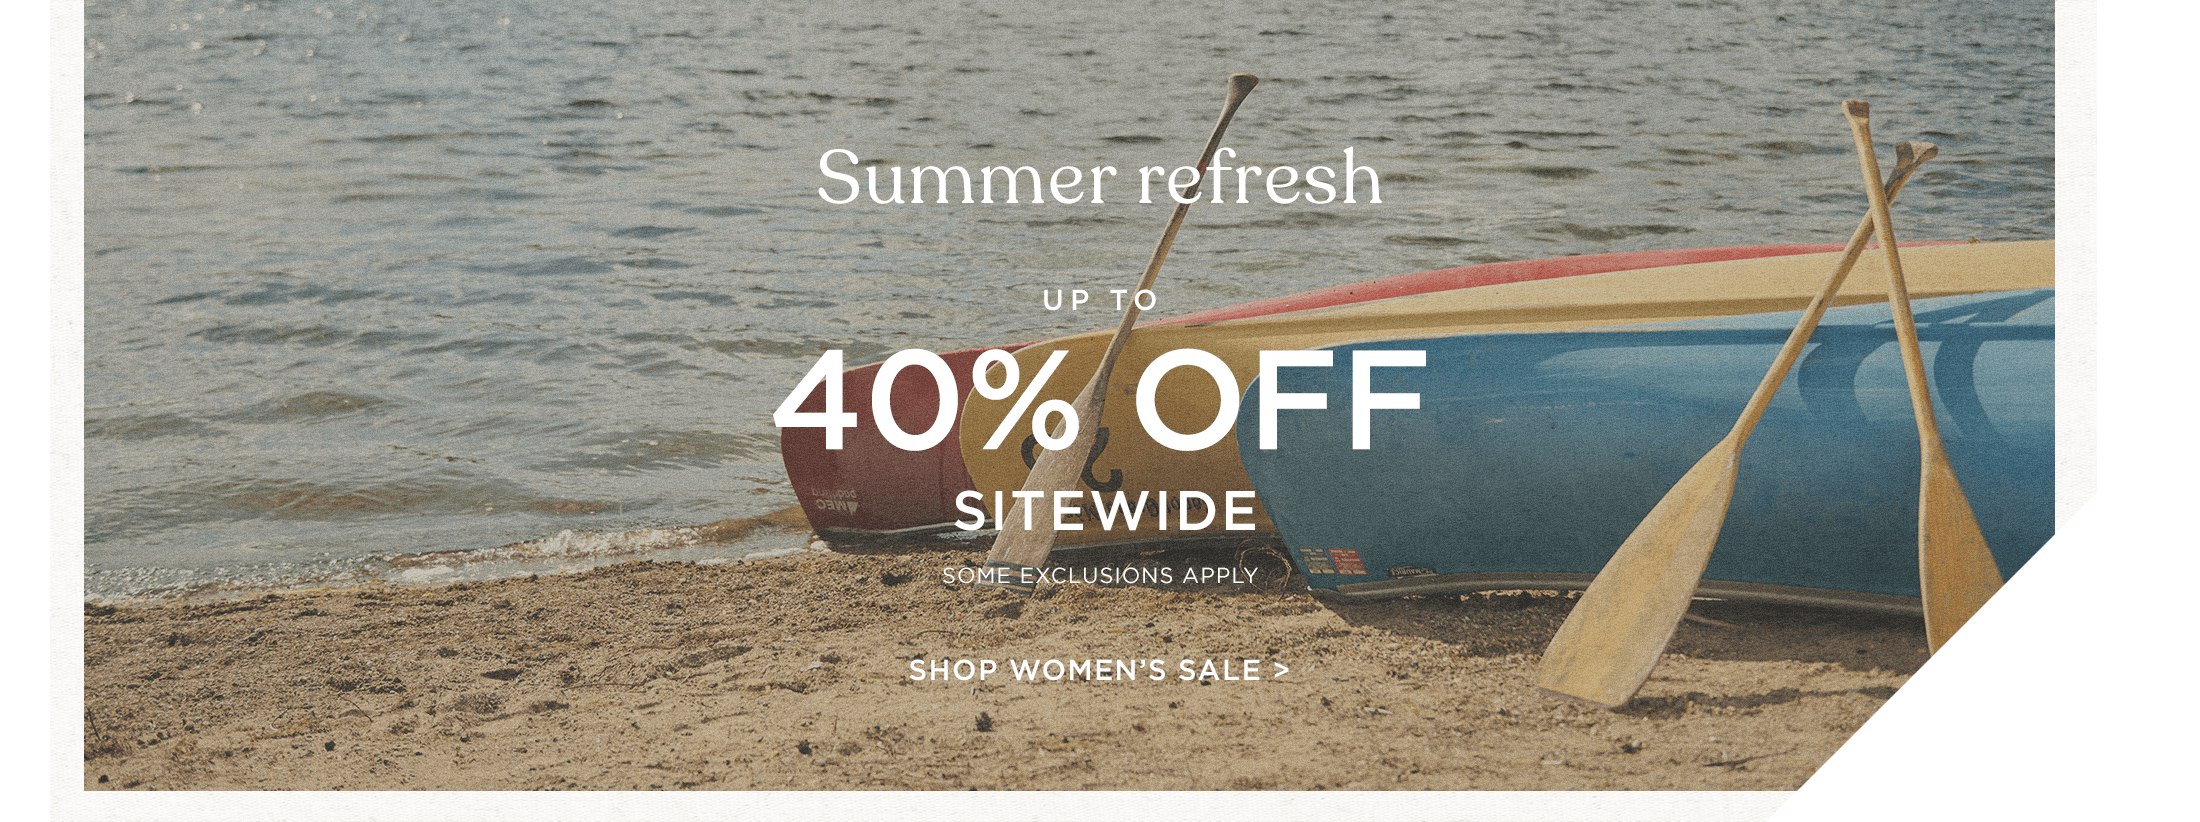 Summer refresh up to 40% off sitewide some exclusions apply